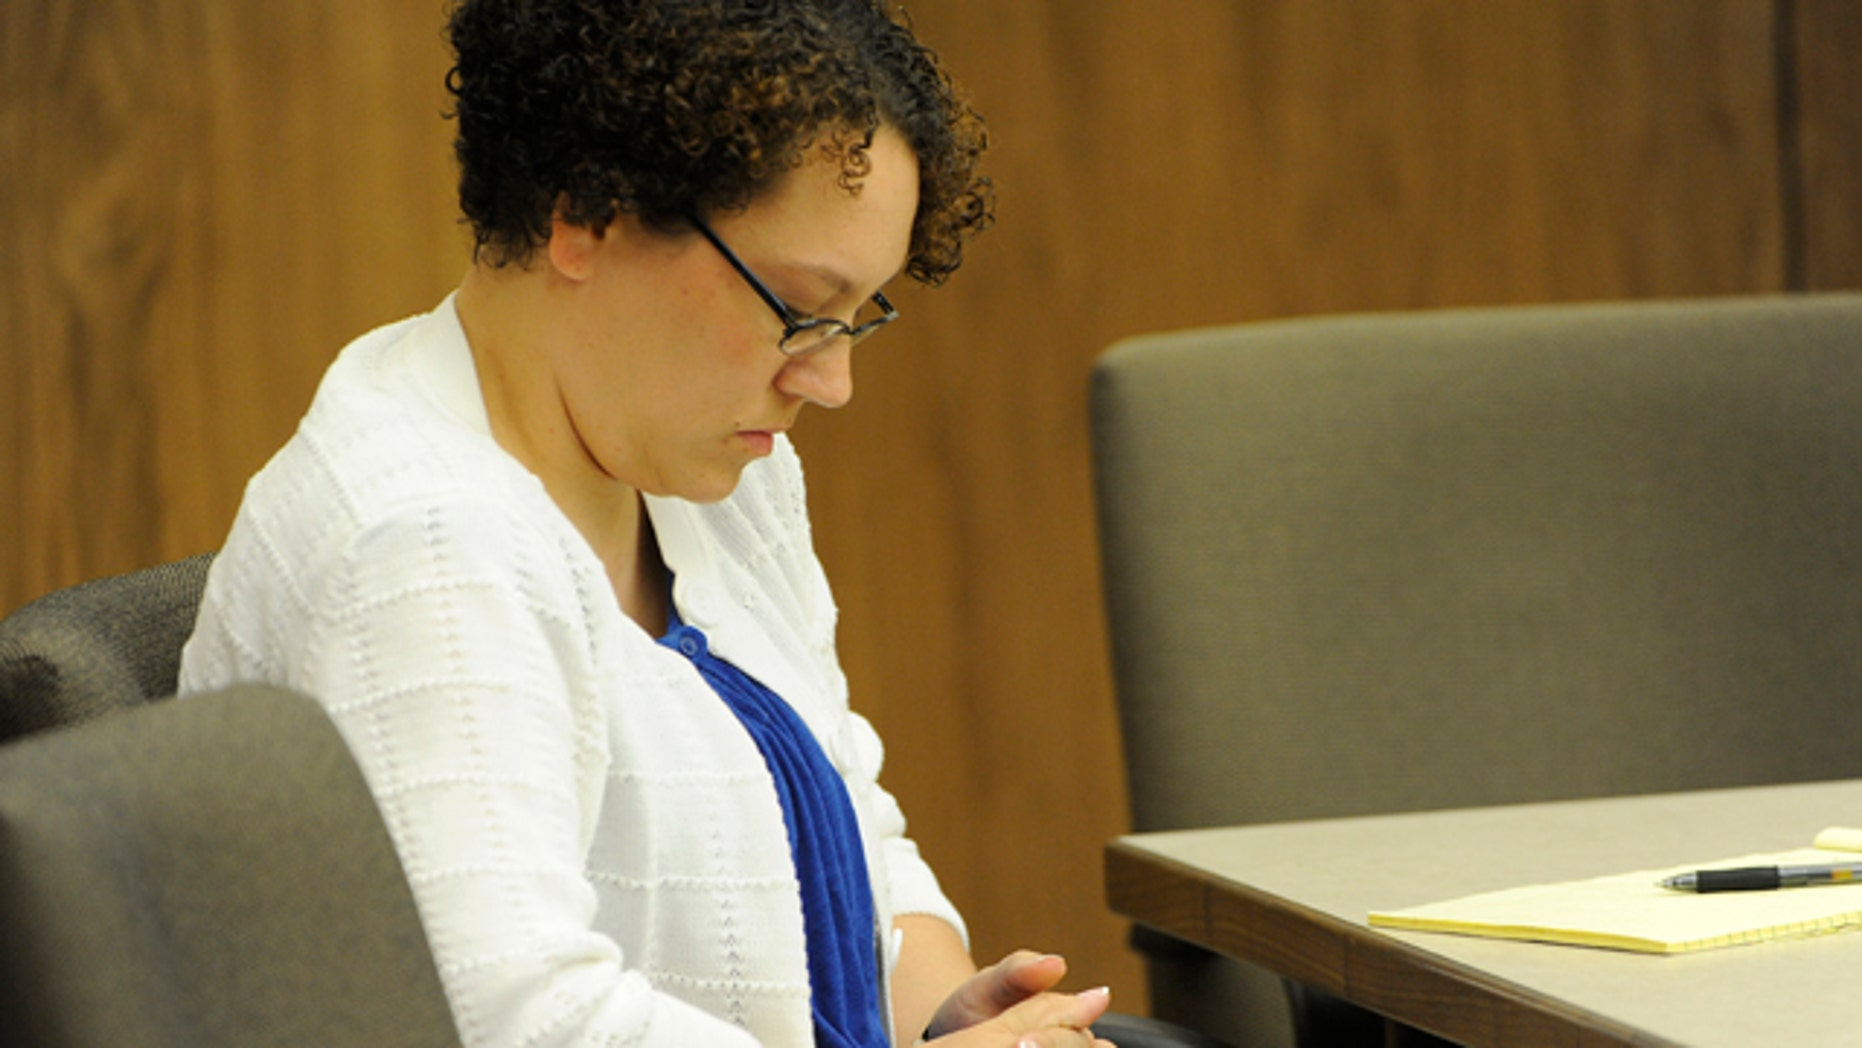 Aug. 17: Jessica Beagley appears in court on the first day of her trial in Anchorage, Alaska.